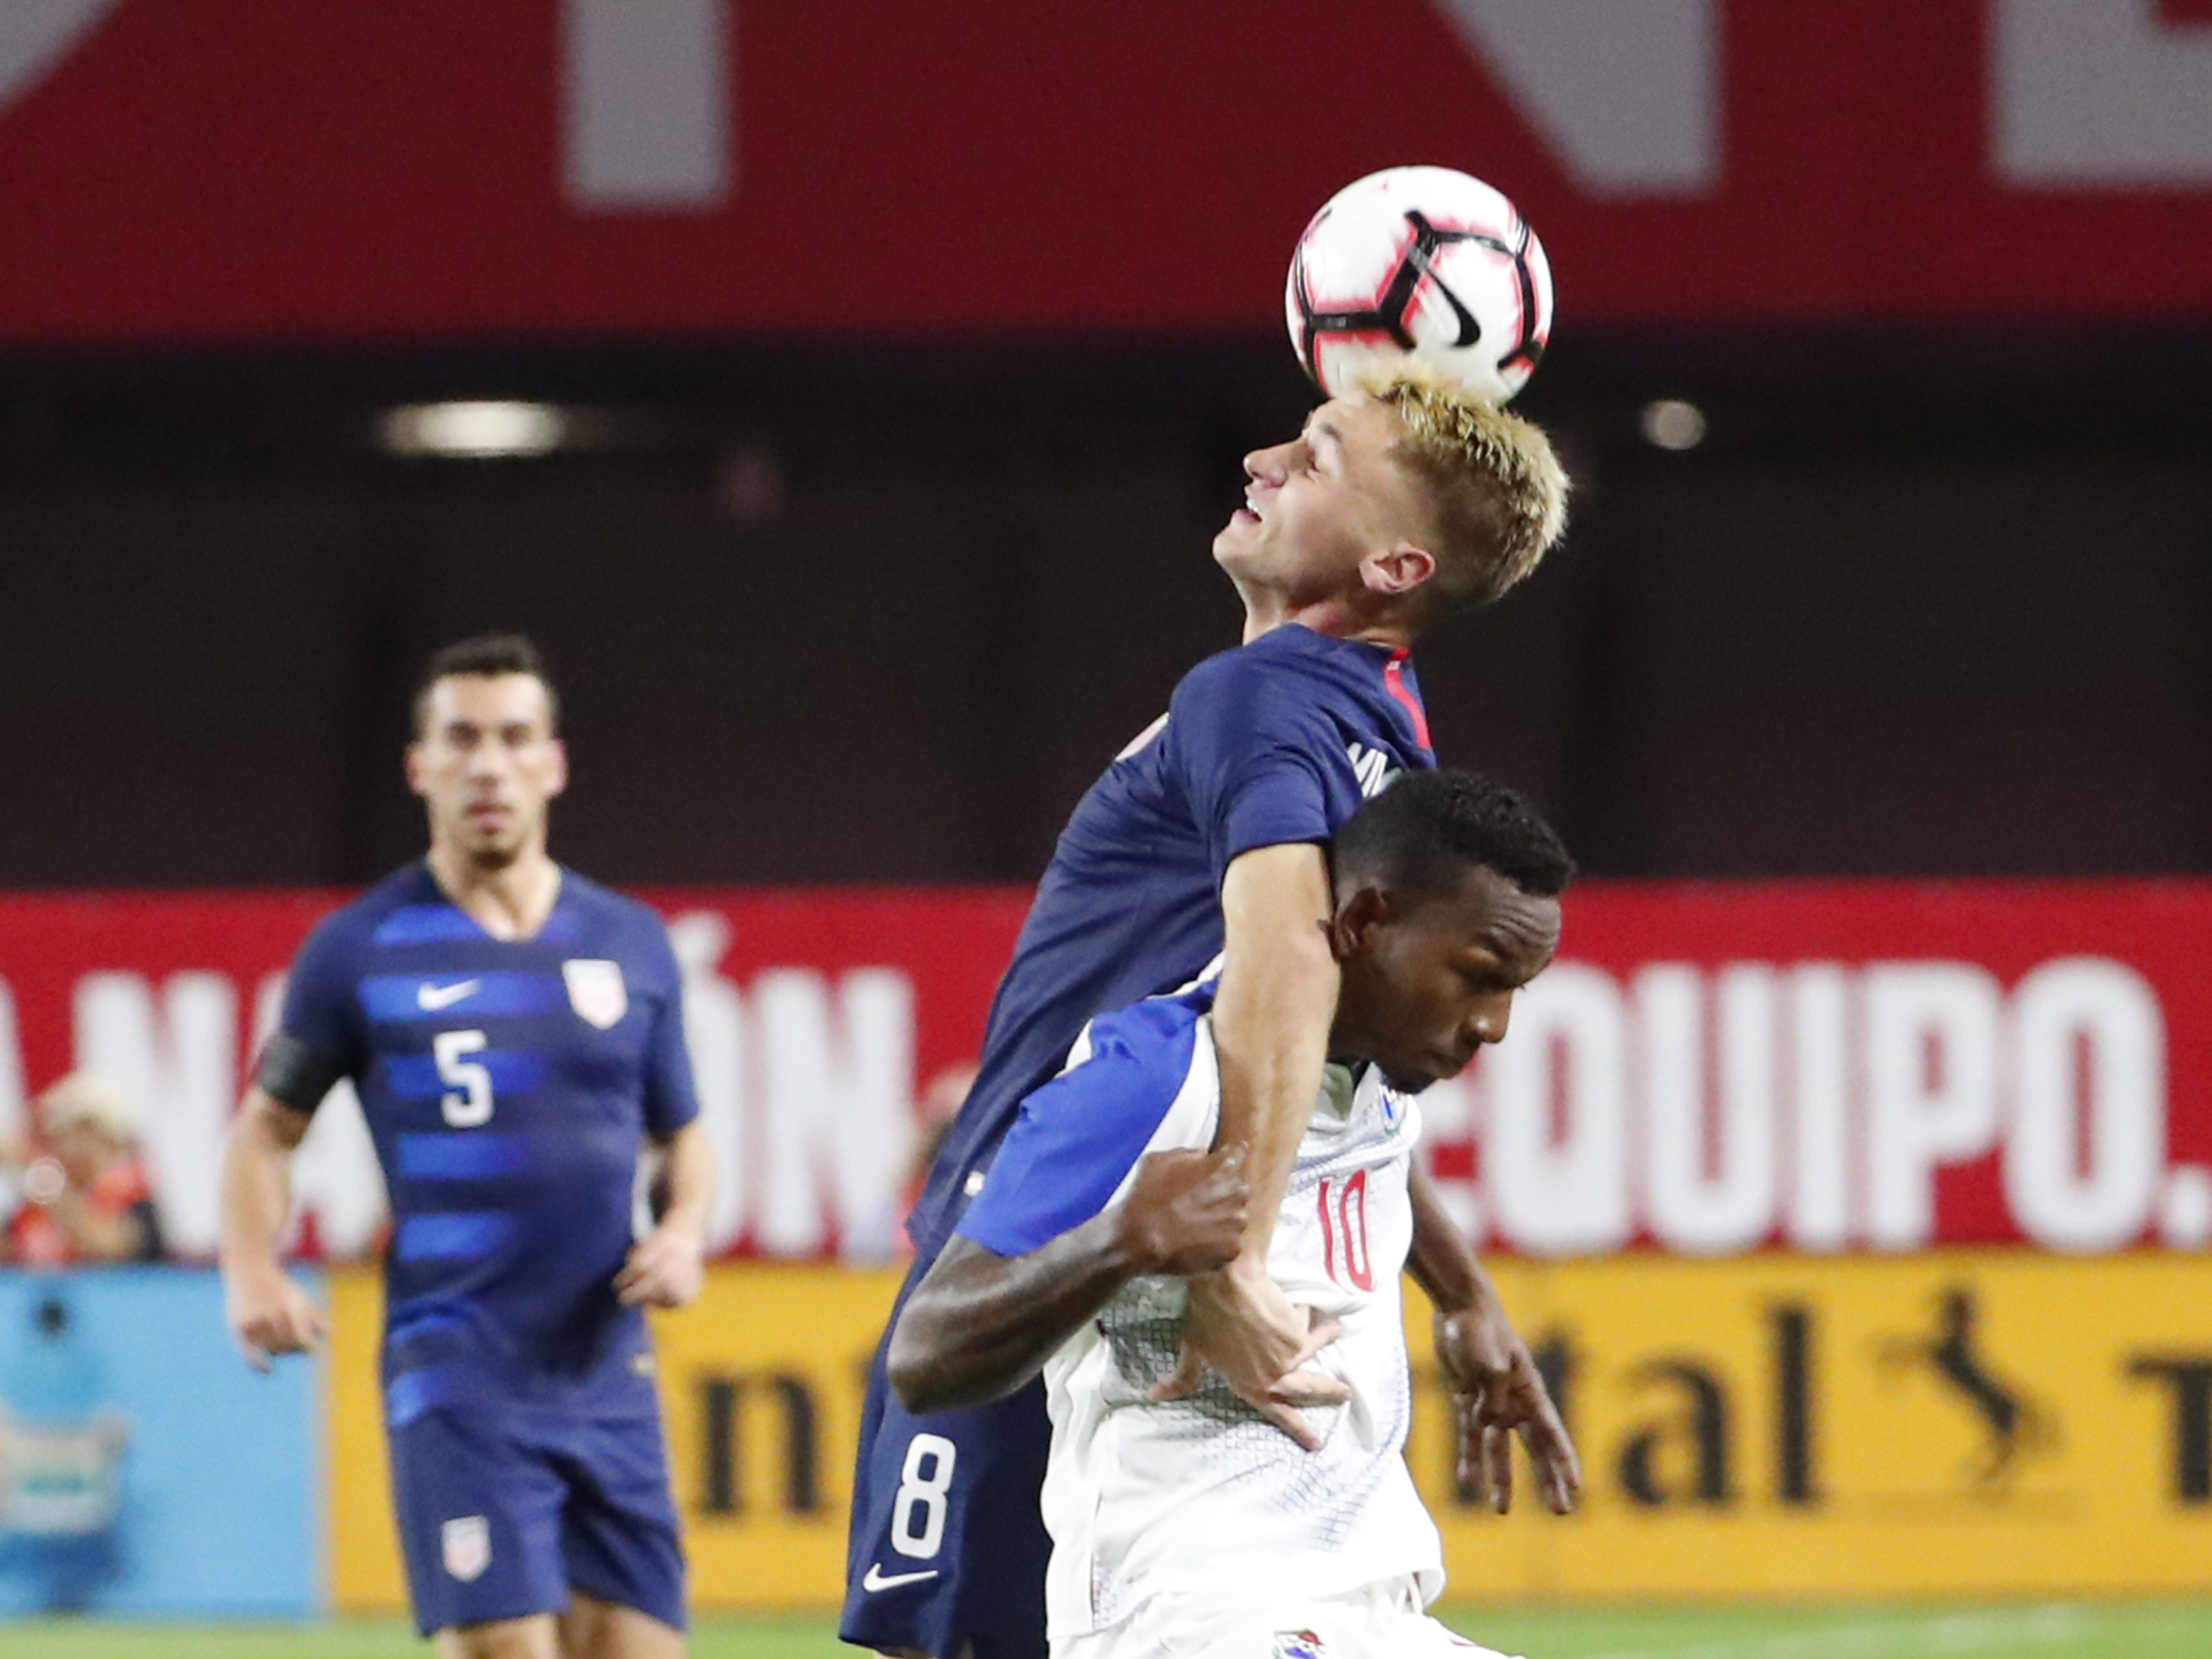 U.S. midfielder Djordje Mihailovic (8) gets tangled with ]Panama midfielder Omar Browne (10) during the first half of a friendly on Jan. 27, 2019 in Glendale, Ariz.